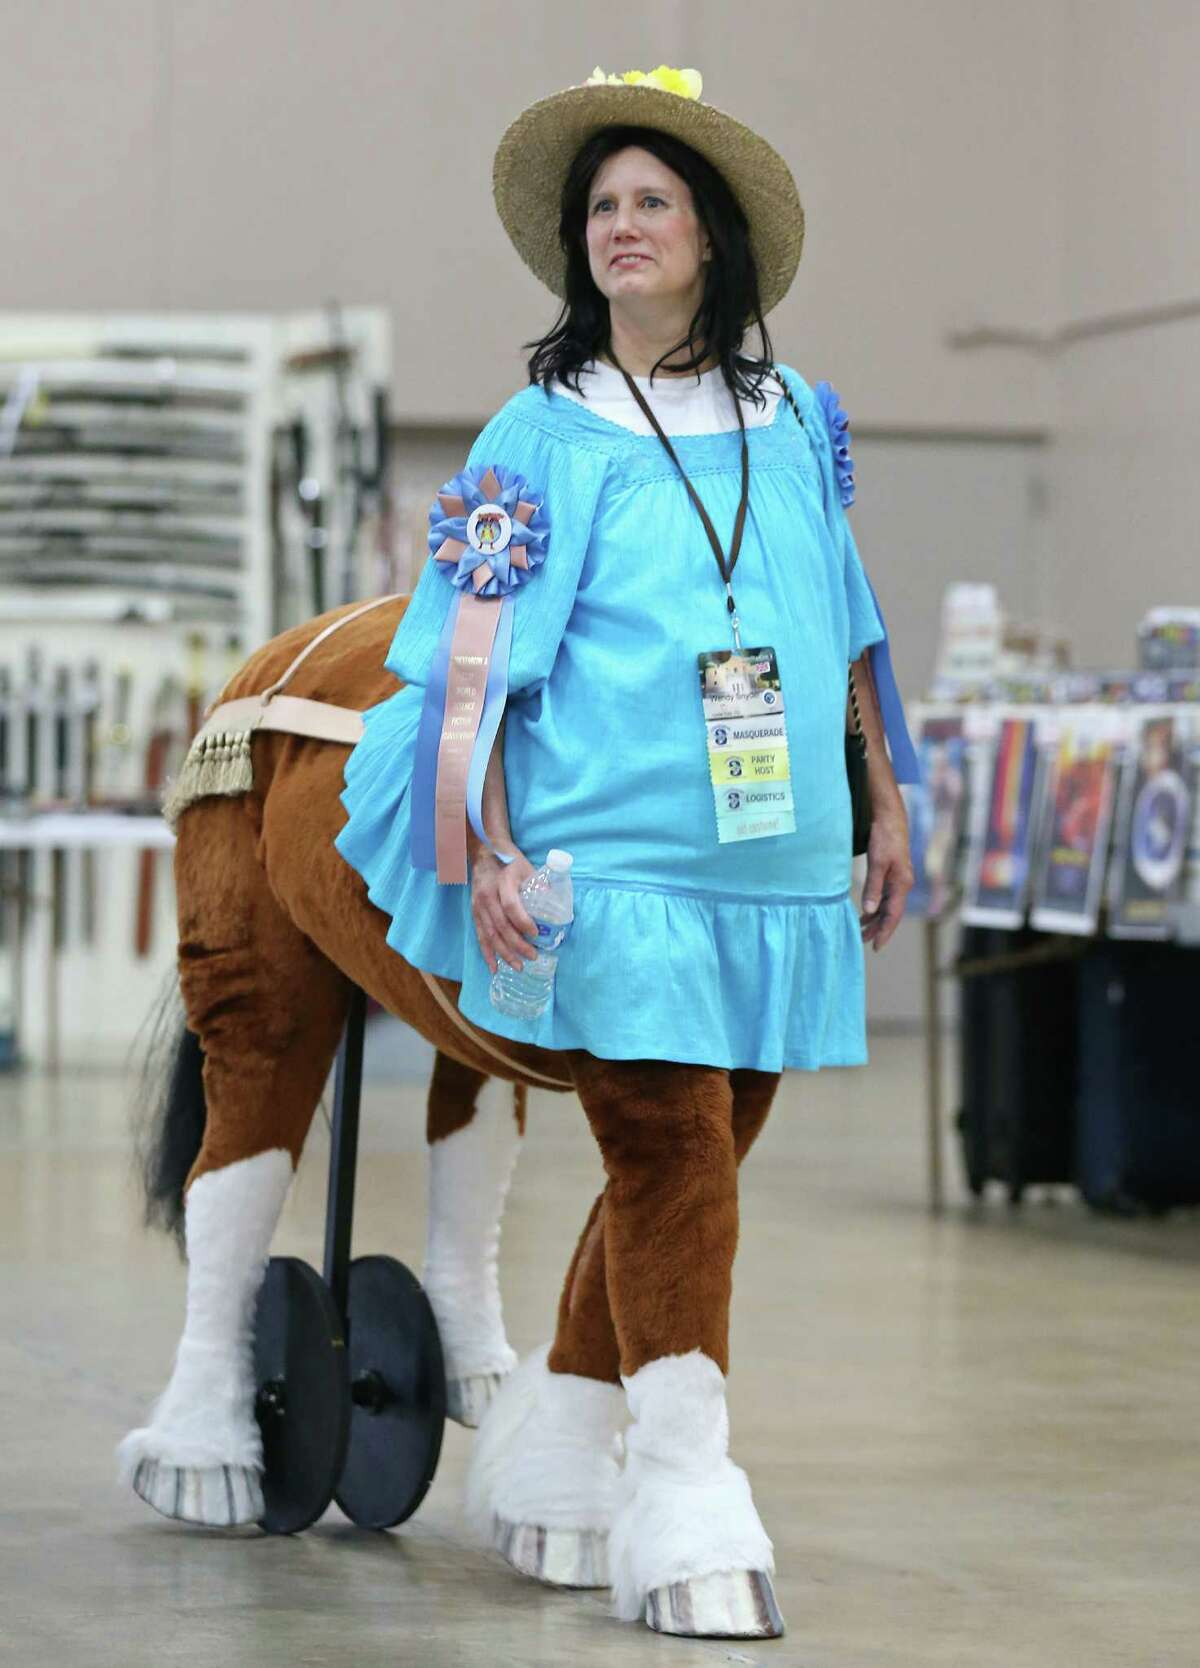 Wearing a centaur costume Wendy Snyder, 53, of Cedar Park, TX, takes in the sights while attending the 71st Annual World Science Fiction Convention Sunday Sept. 1, 2013 at the Henry B. Gonzalez Convention Center.